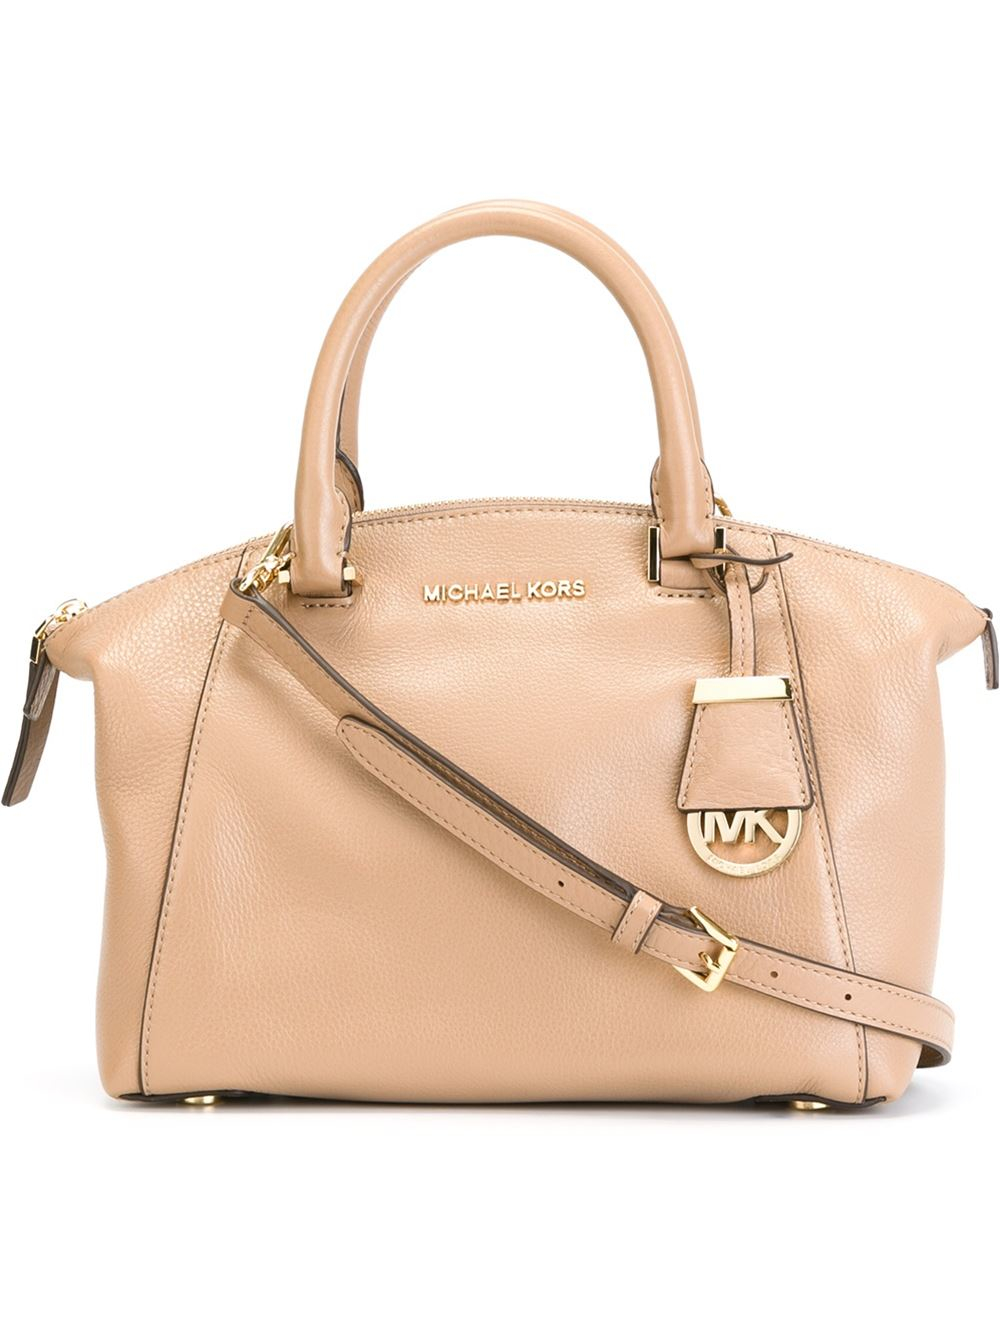 cd3b9725c93c ... coupon lyst michael kors small riley satchel in natural e2969 720f5